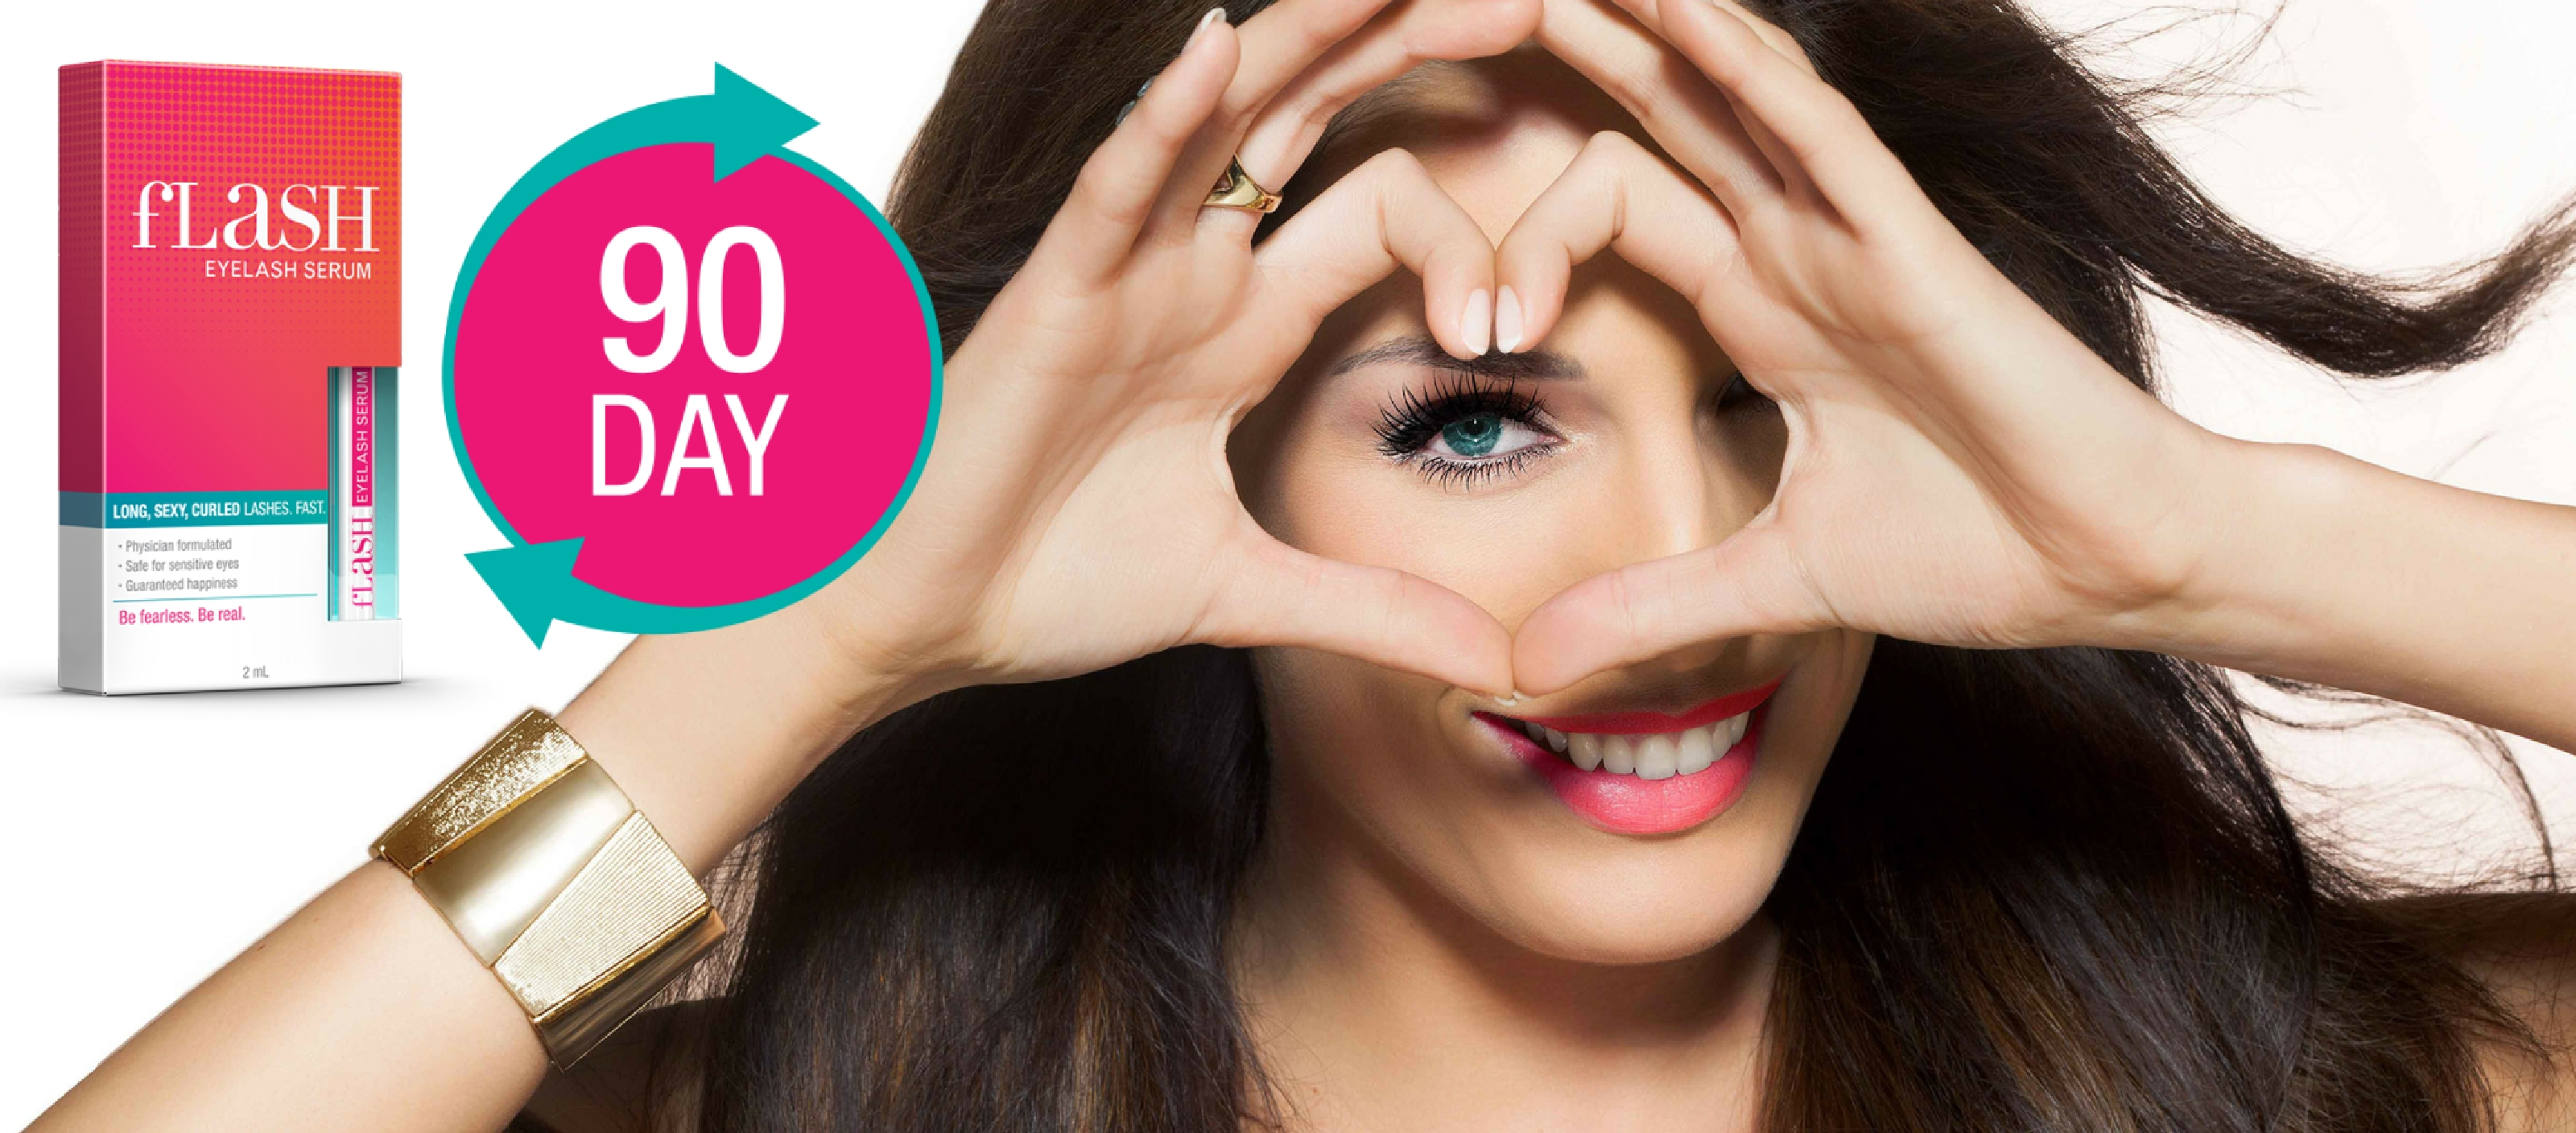 The Best Eyelash Growth Serum In Nz As Voted By 3 Top Beauty Bloggers